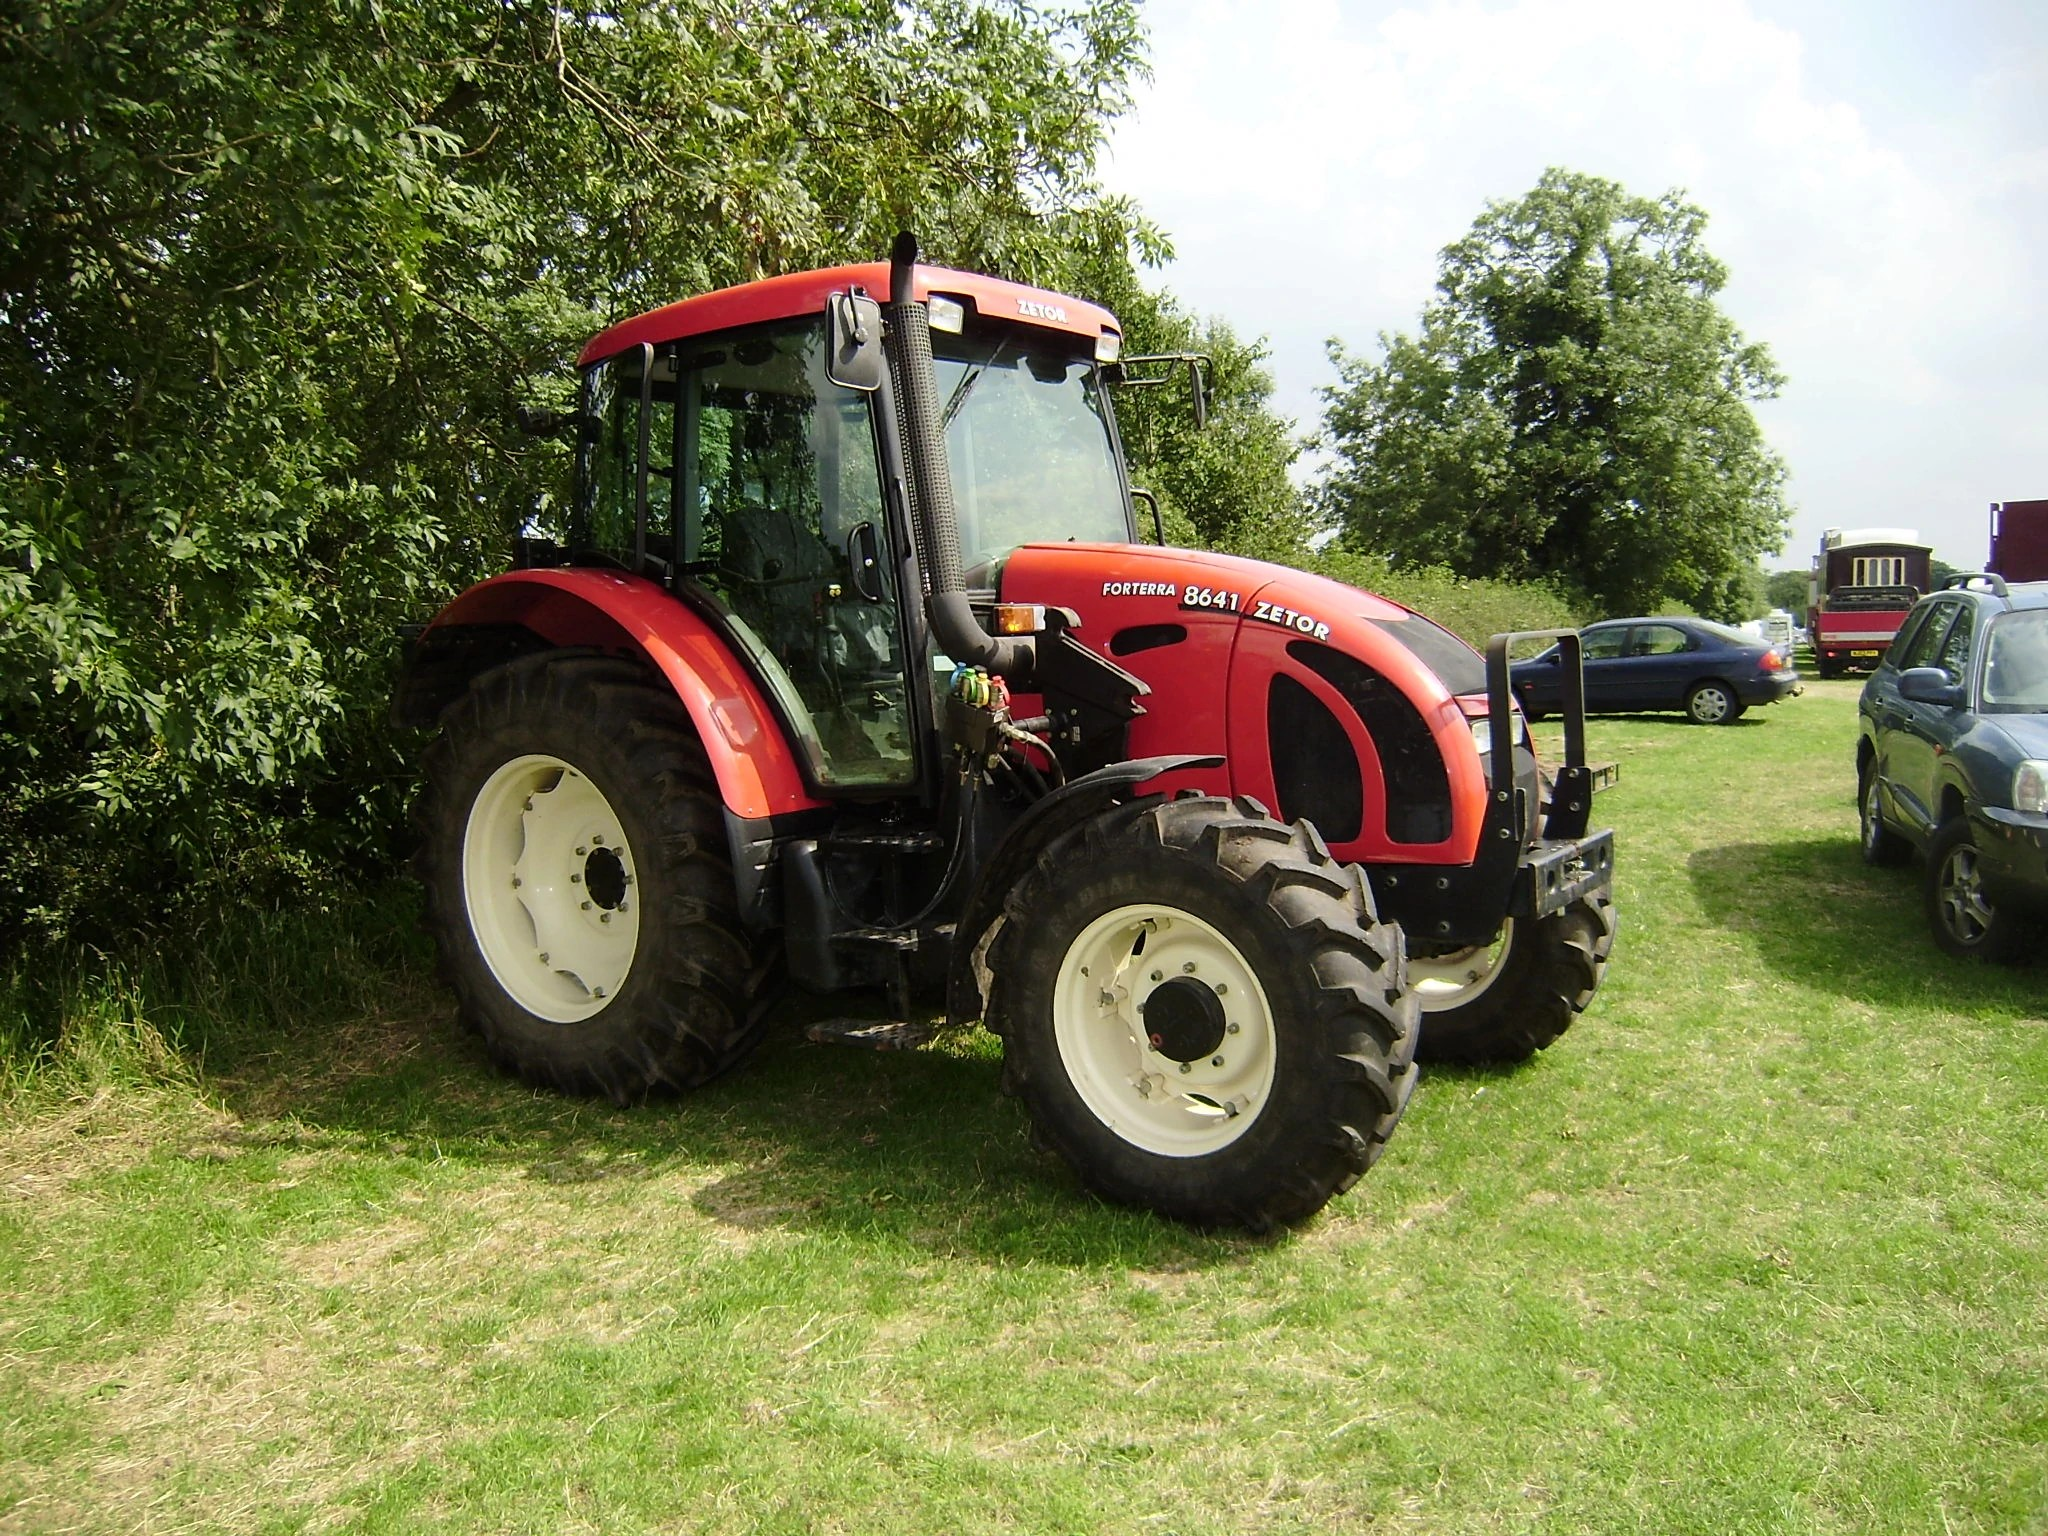 Wiring diagram zetor 5211 free download wiring diagram xwiaw bush free download wiring diagram zetor tractor construction plant wiki fandom powered by wikia of wiring asfbconference2016 Choice Image